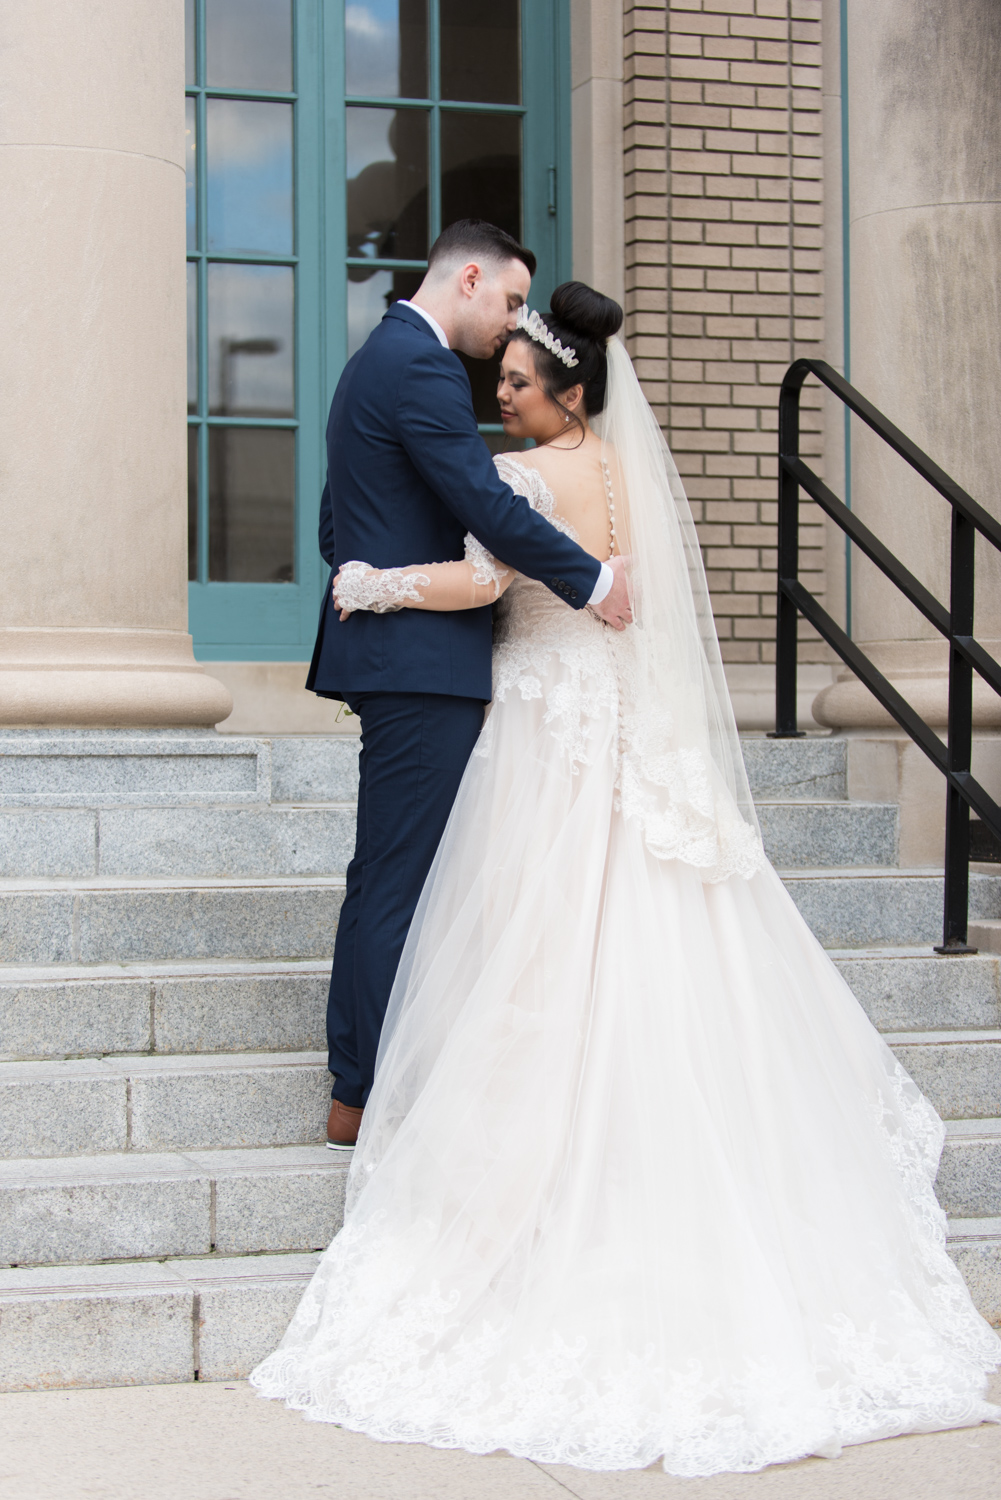 Rose Gold Wedding at Historic Post Office Virginia Harry Potter Themed Wedding-157.JPG